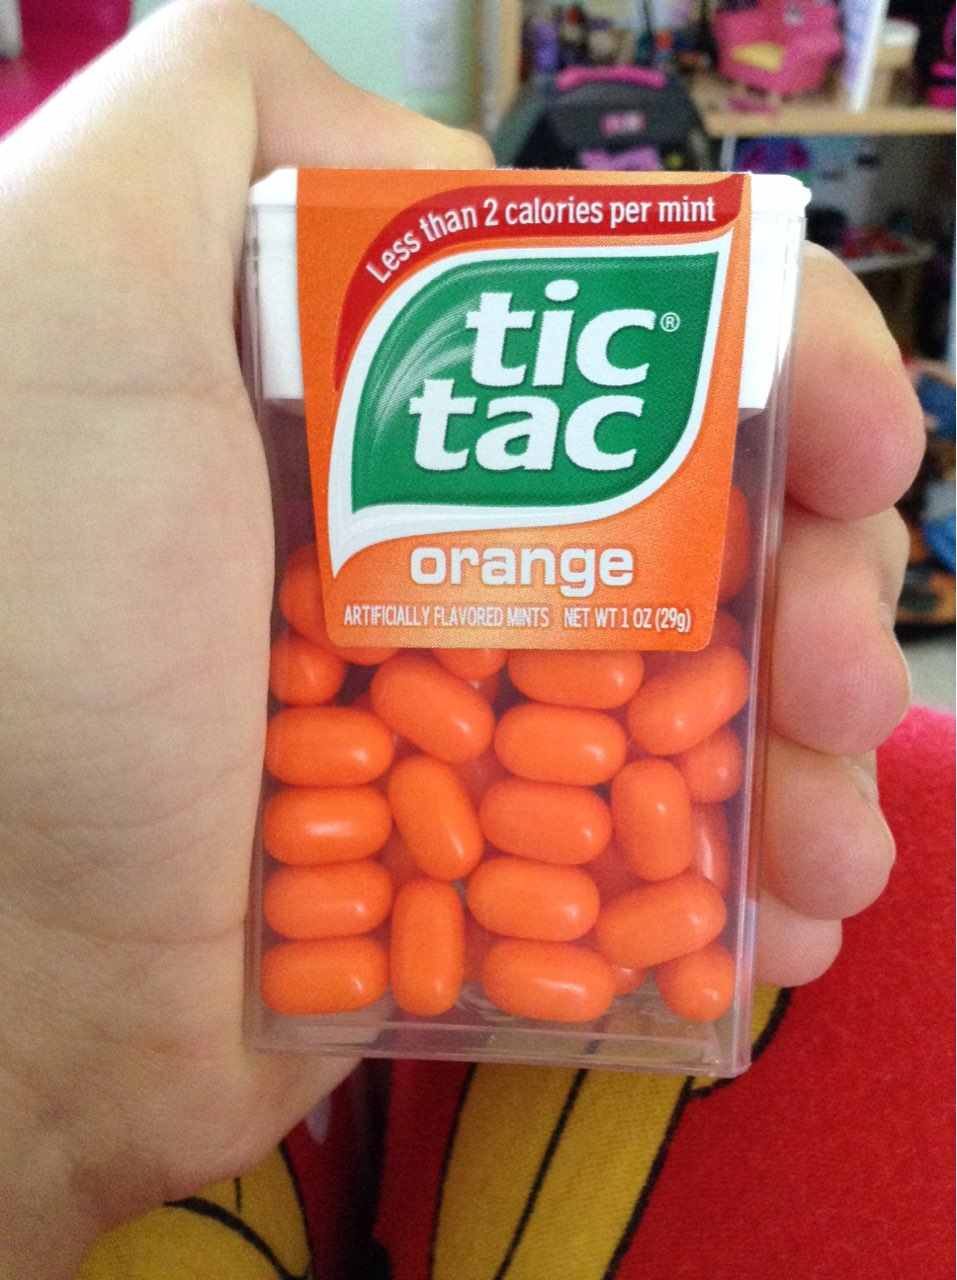 dbbed75e2172 How Much Sugar Is In An Orange Tic Tac - Sugar and AirCraft Wallpaper